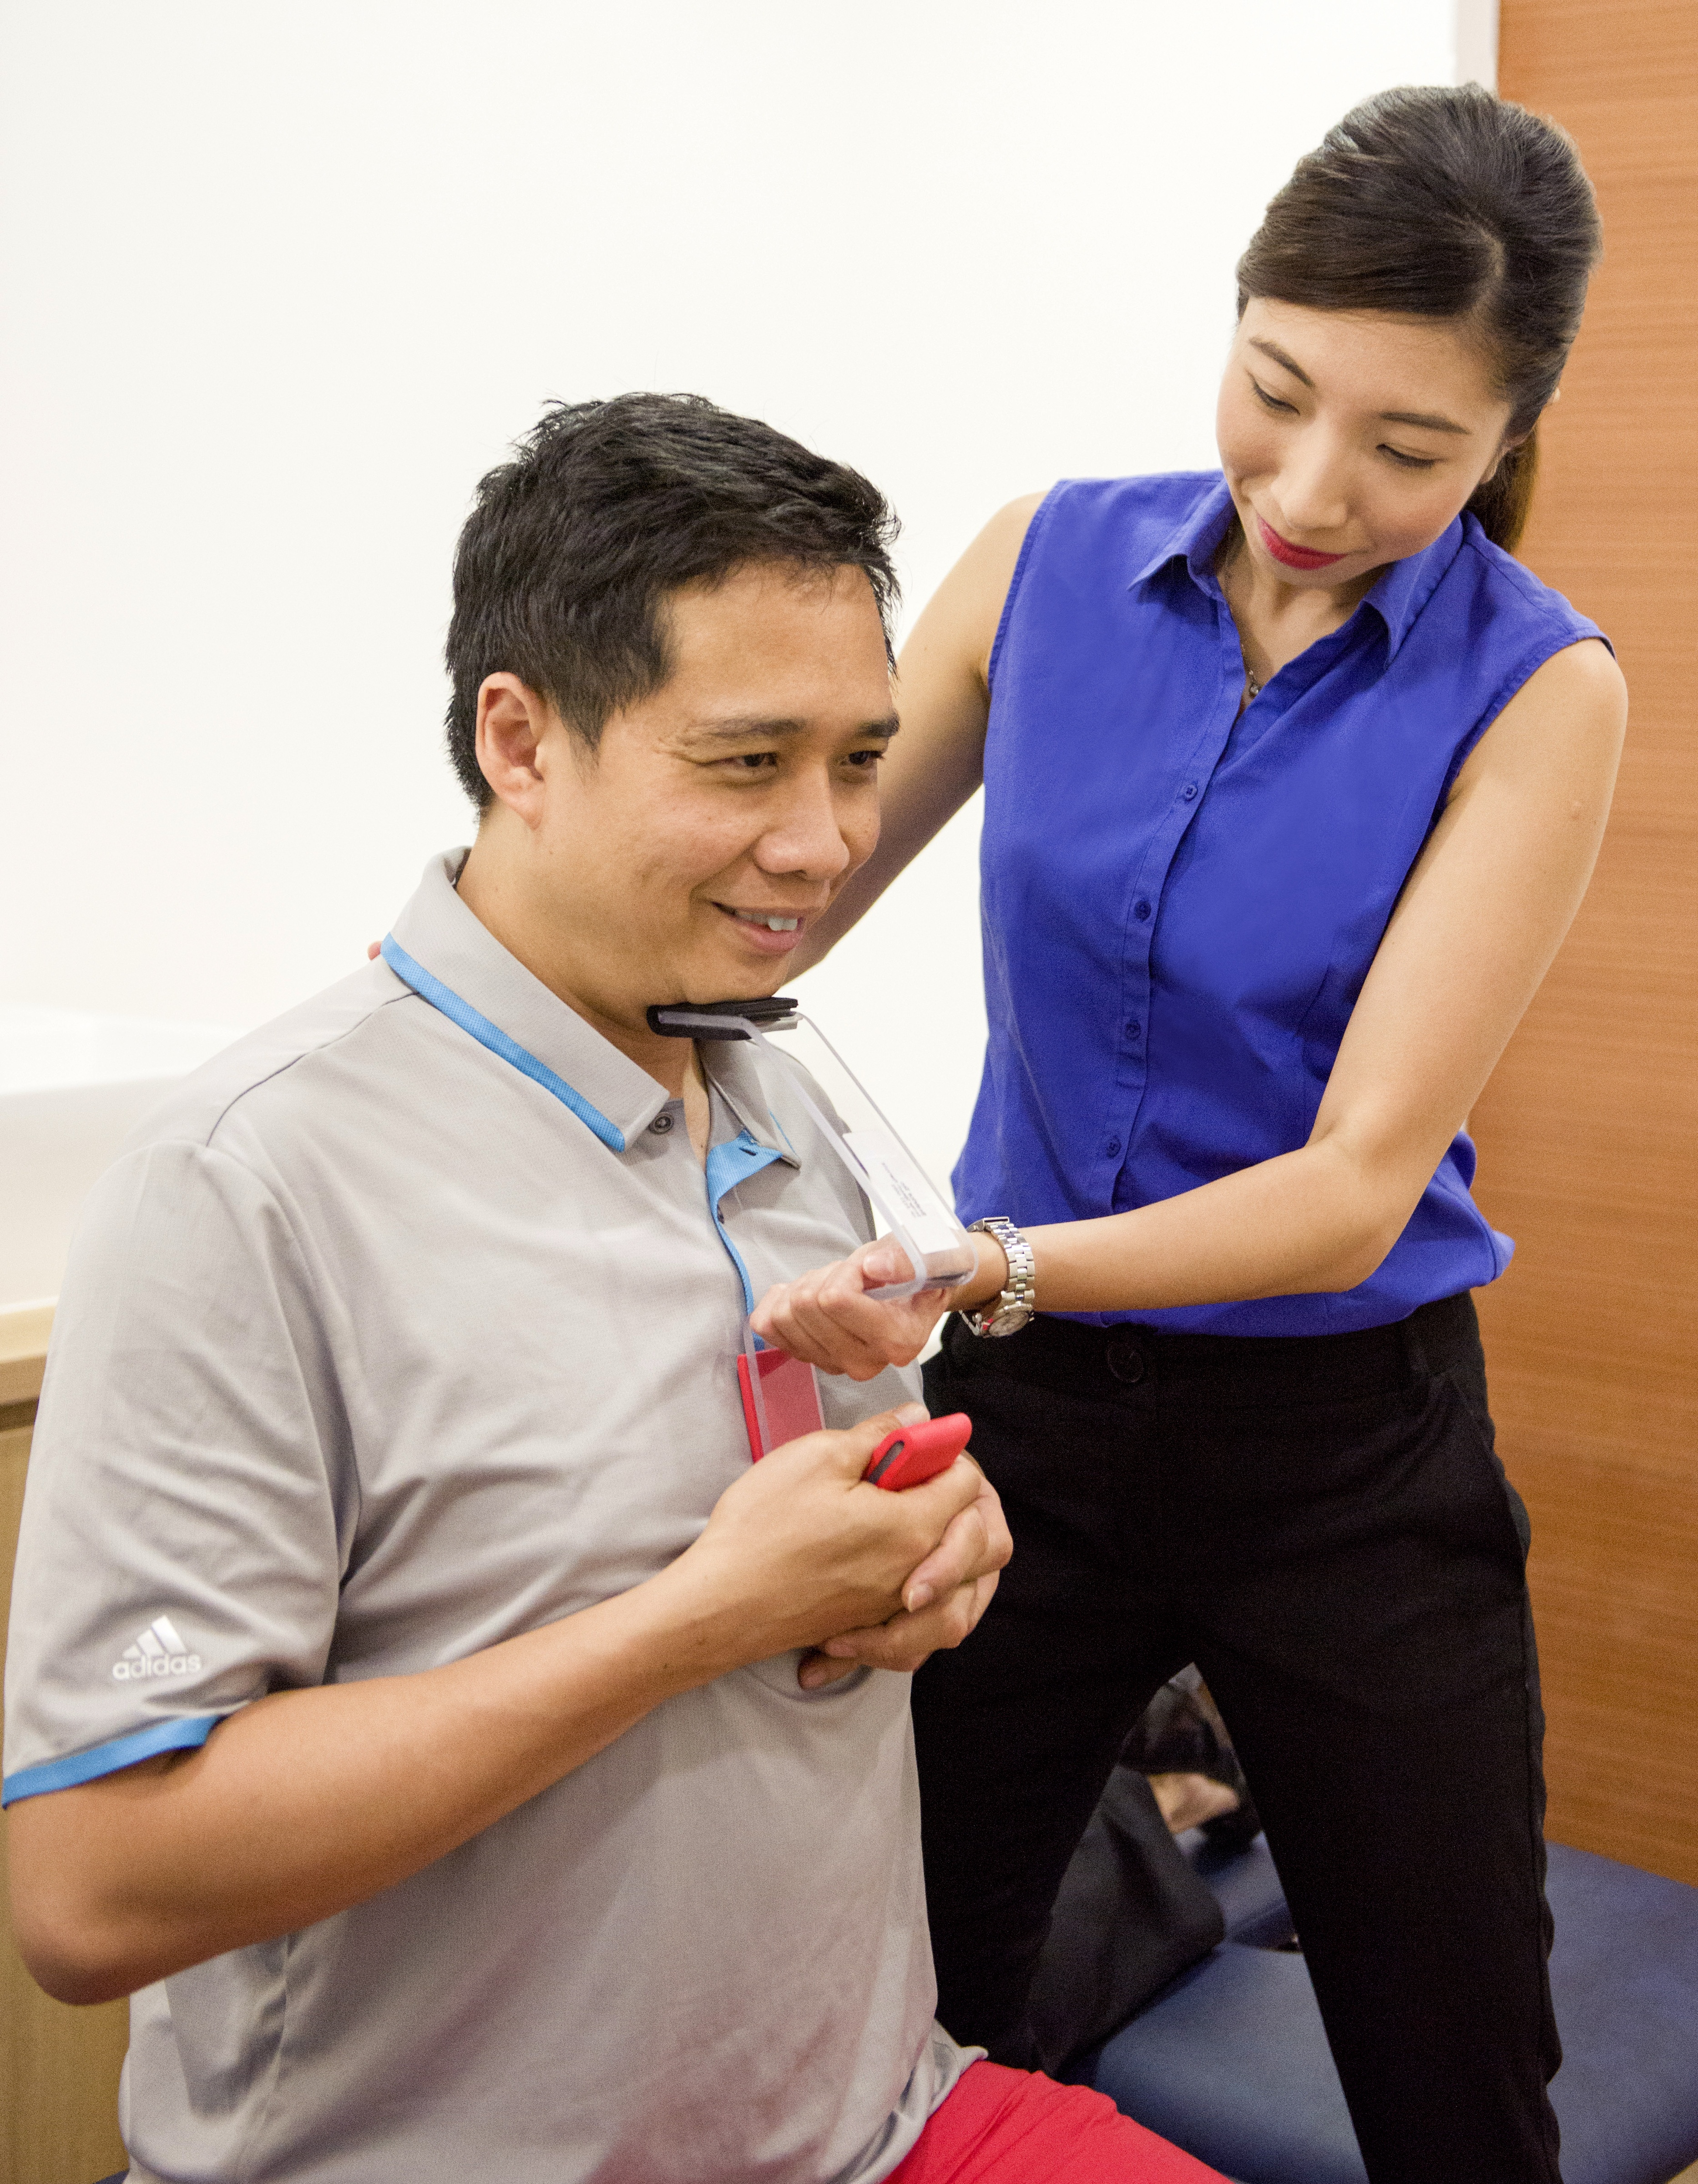 Speech therapist Beatrice showing a patient an isometric exercise.